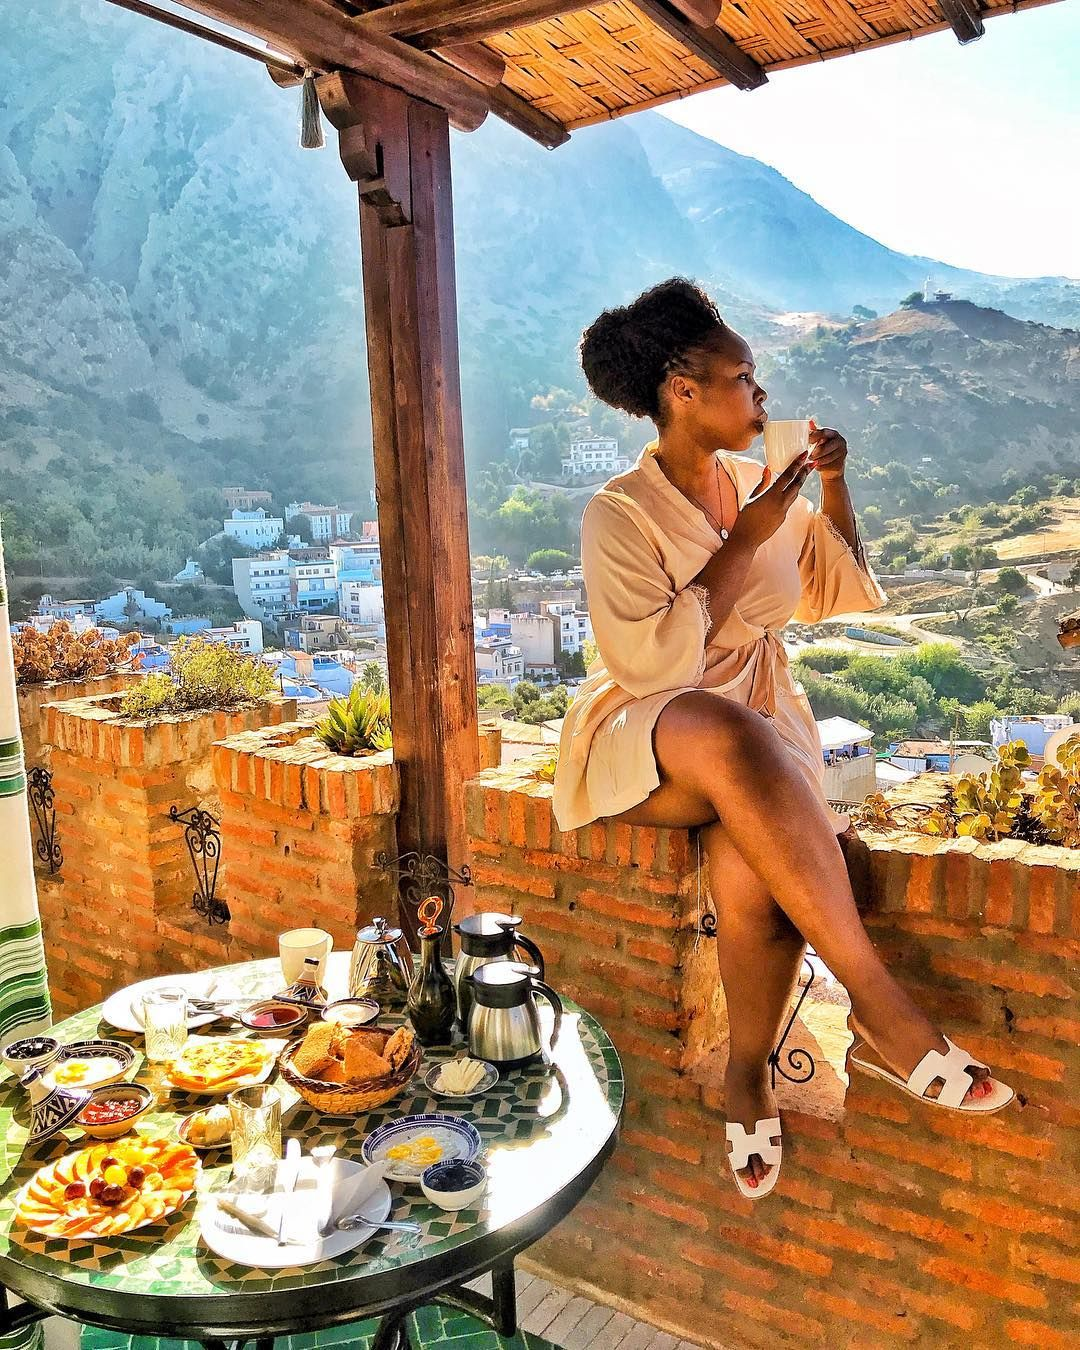 #GlamAfricaDestination: South Africa's Teekay In Chefchaouen, The Colourful Mountainous City Of Morroco   Glam Africa